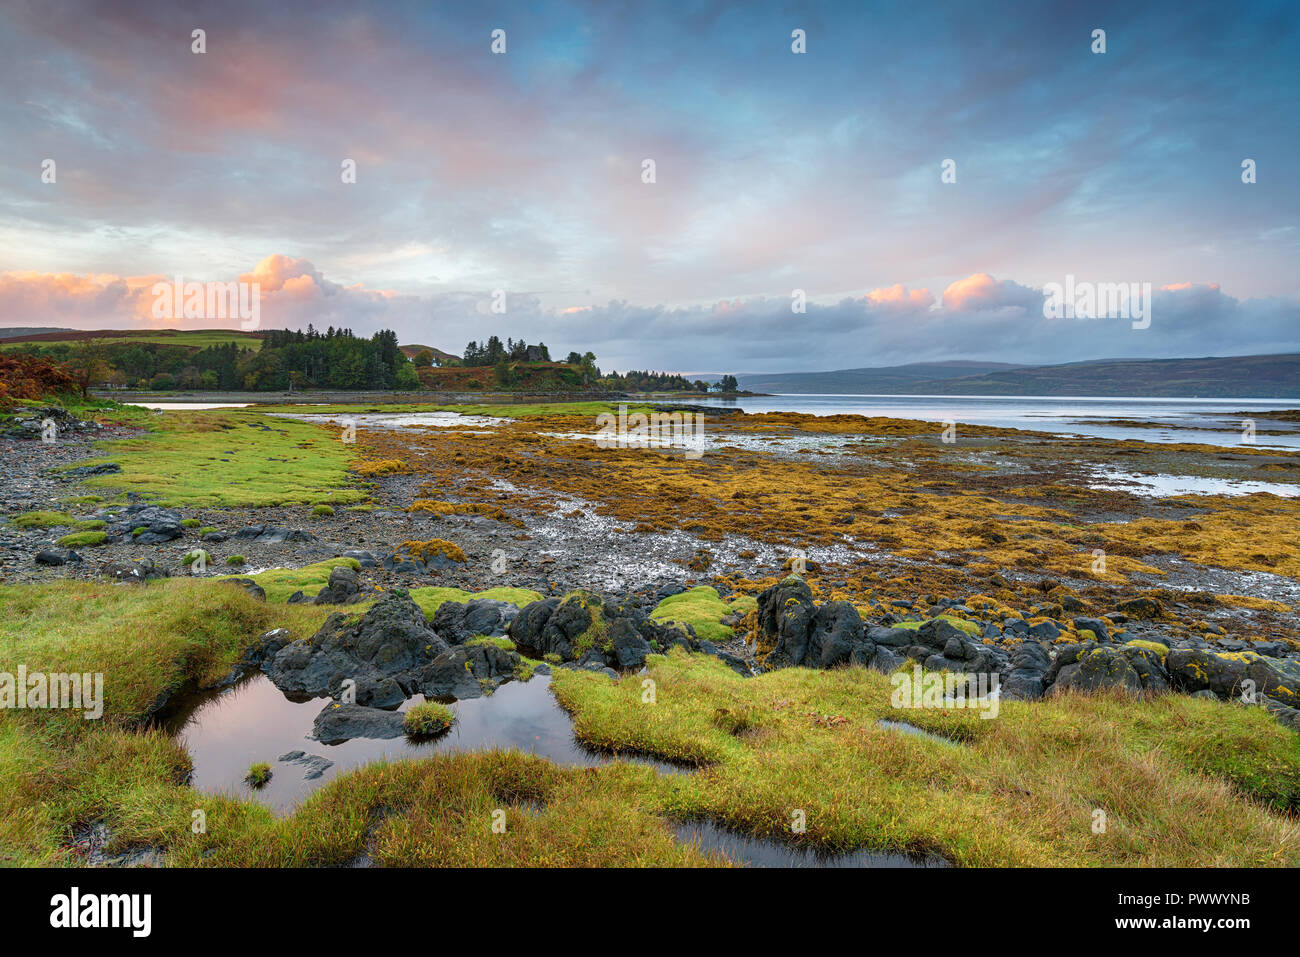 Sunset over the Sound of Mull near Salen on the Isle of Mull in Scotland - Stock Image